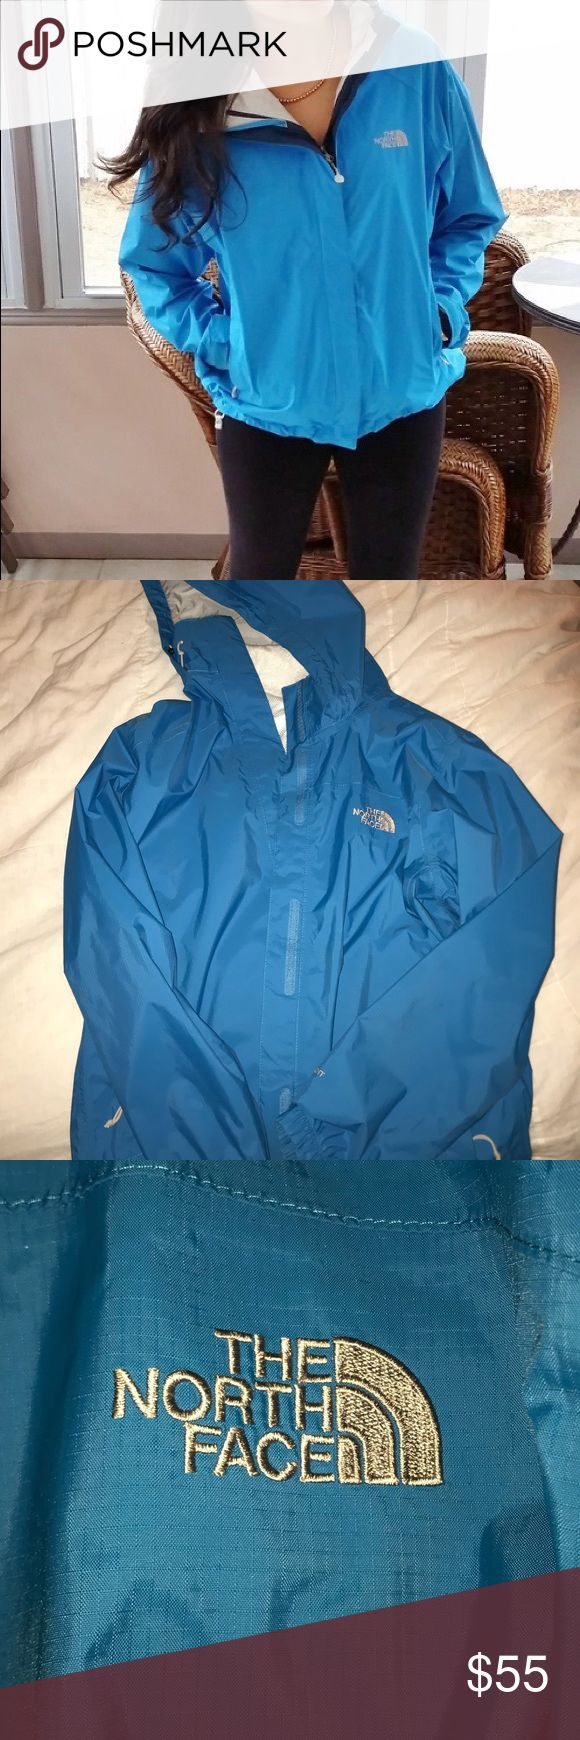 Super cute sky blue north face rain jacket Excellent condition rain jacket! Just was too small on me:/ absolutely love the color and style of the jacket! Feel free to ask any questions:) North Face Jackets & Coats Utility Jackets